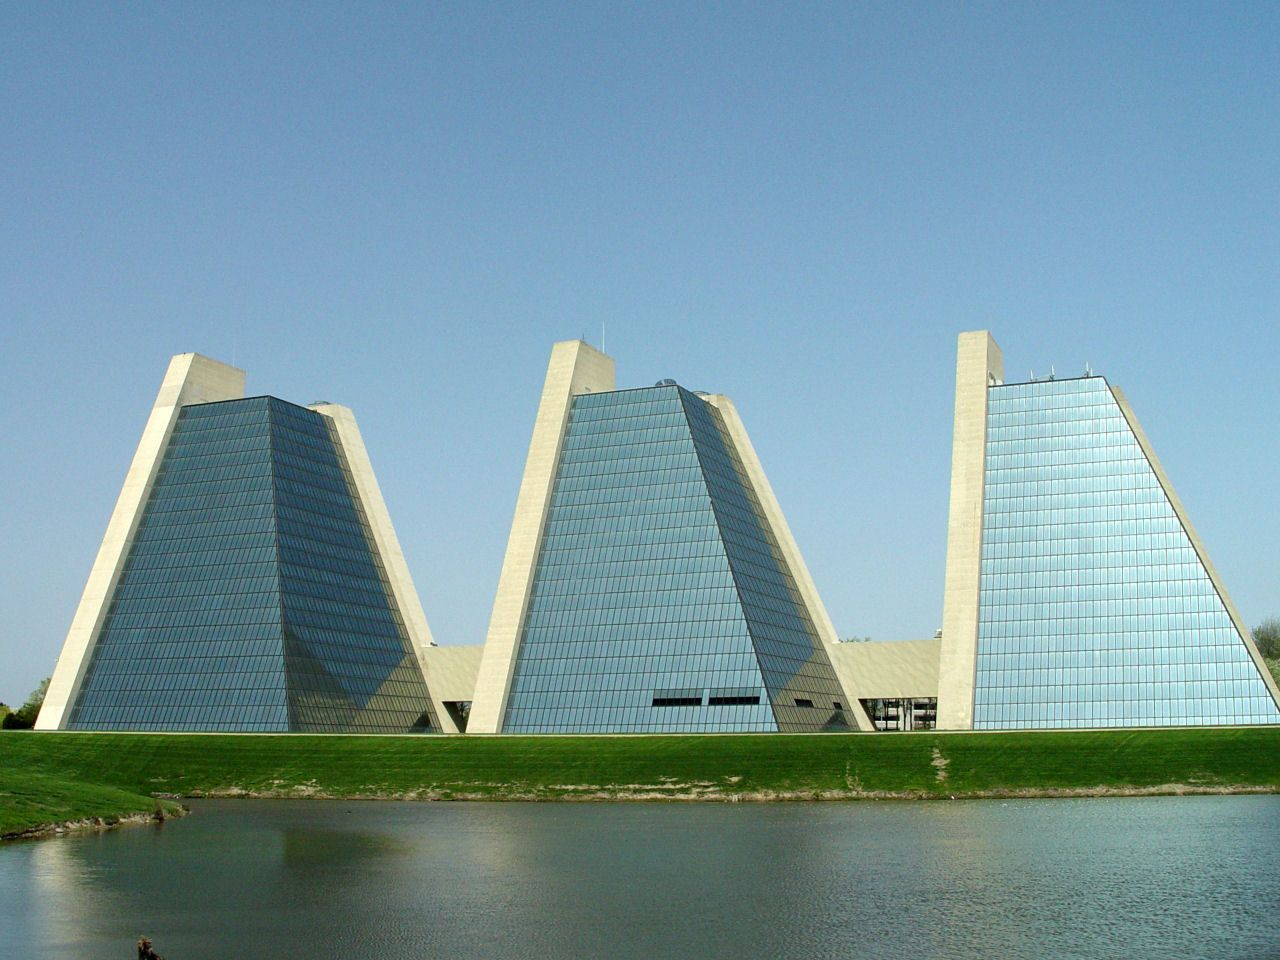 Kevin Roche The Pyramids Indianapolis Unusual Buildings